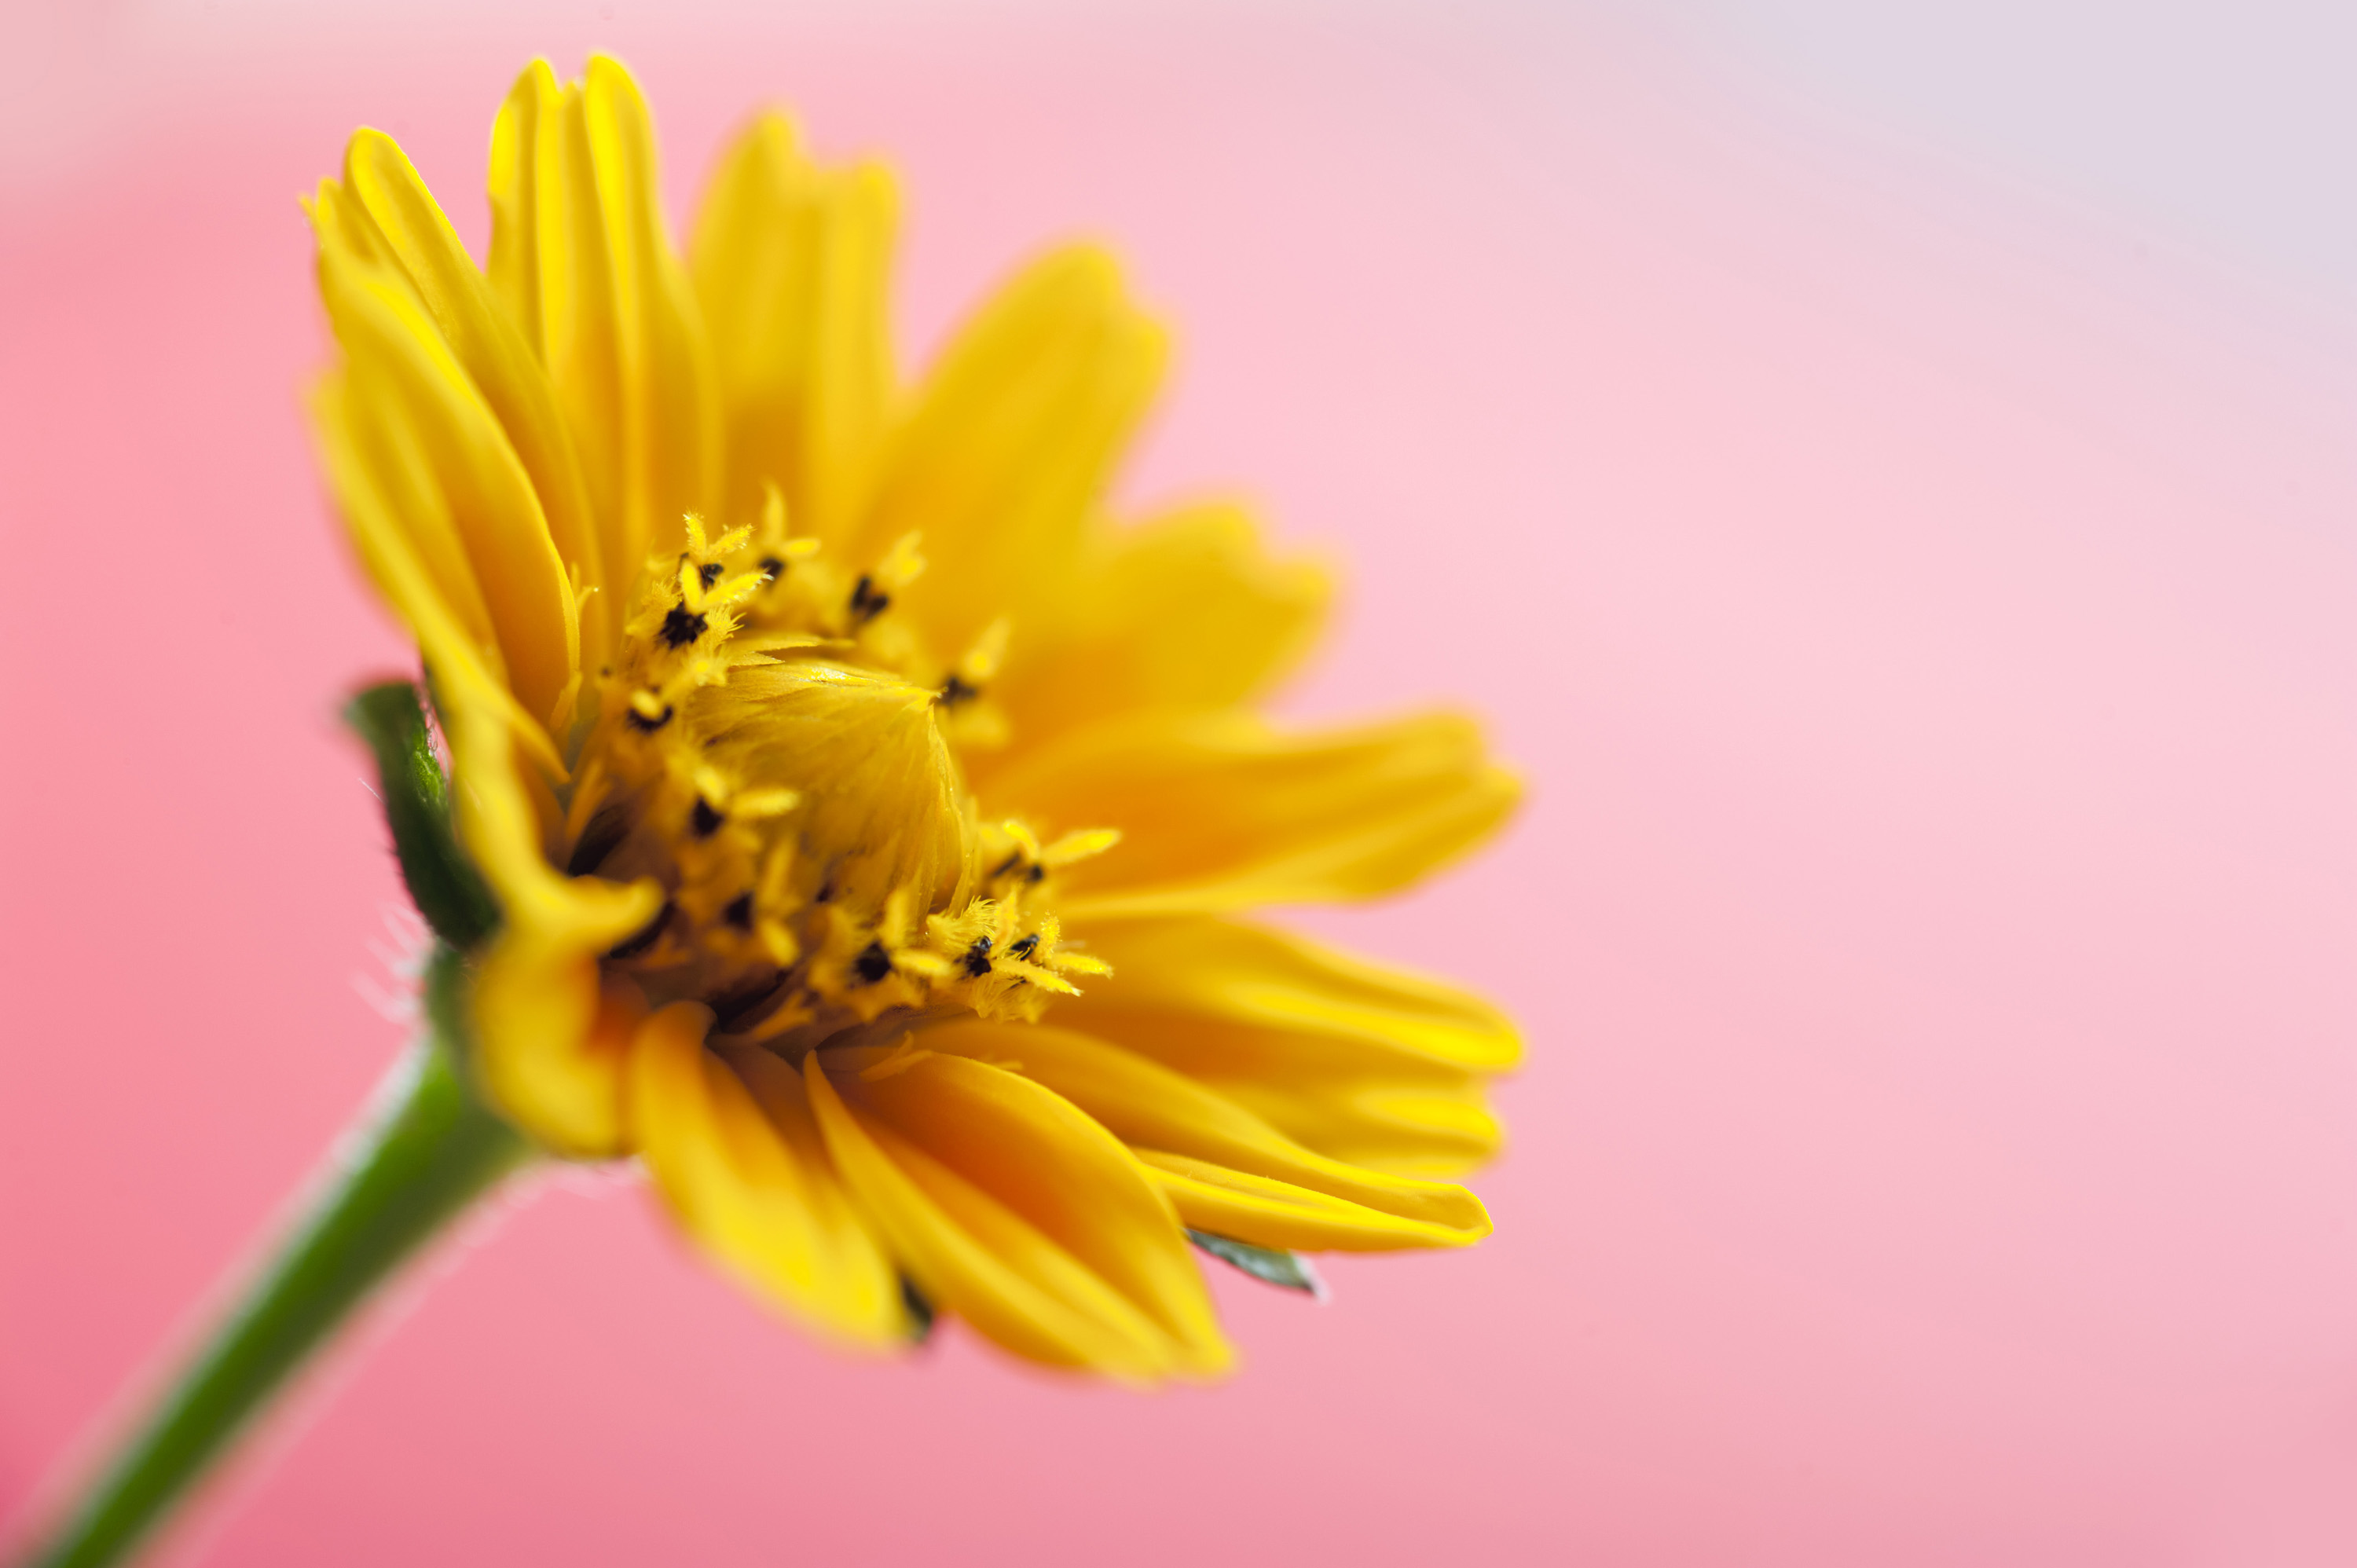 Spring yellow flower on pink background creative commons stock image download mightylinksfo